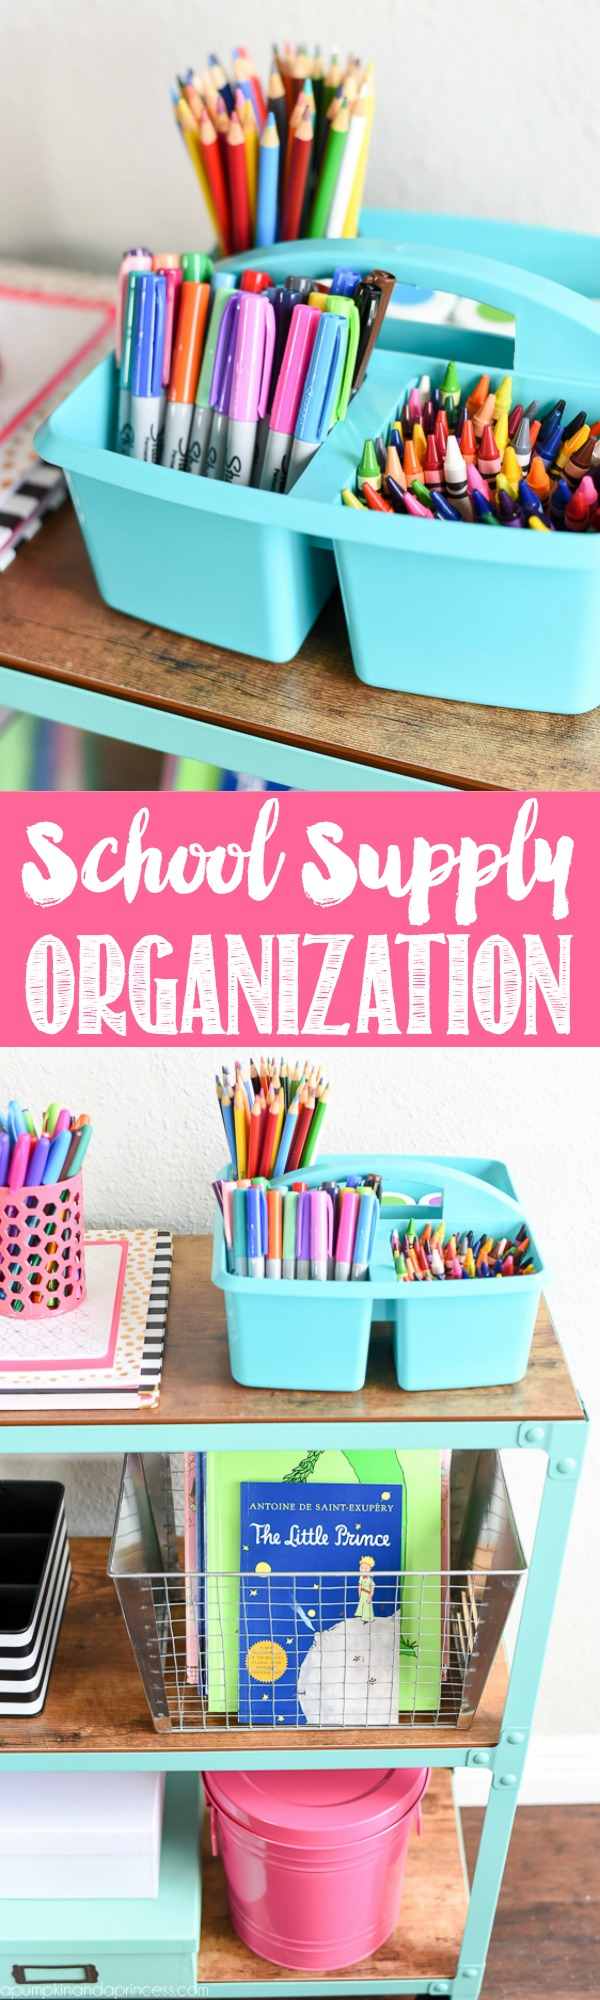 School Supply Organization Cart   Easy Organization Ideas For Art And  School Supplies